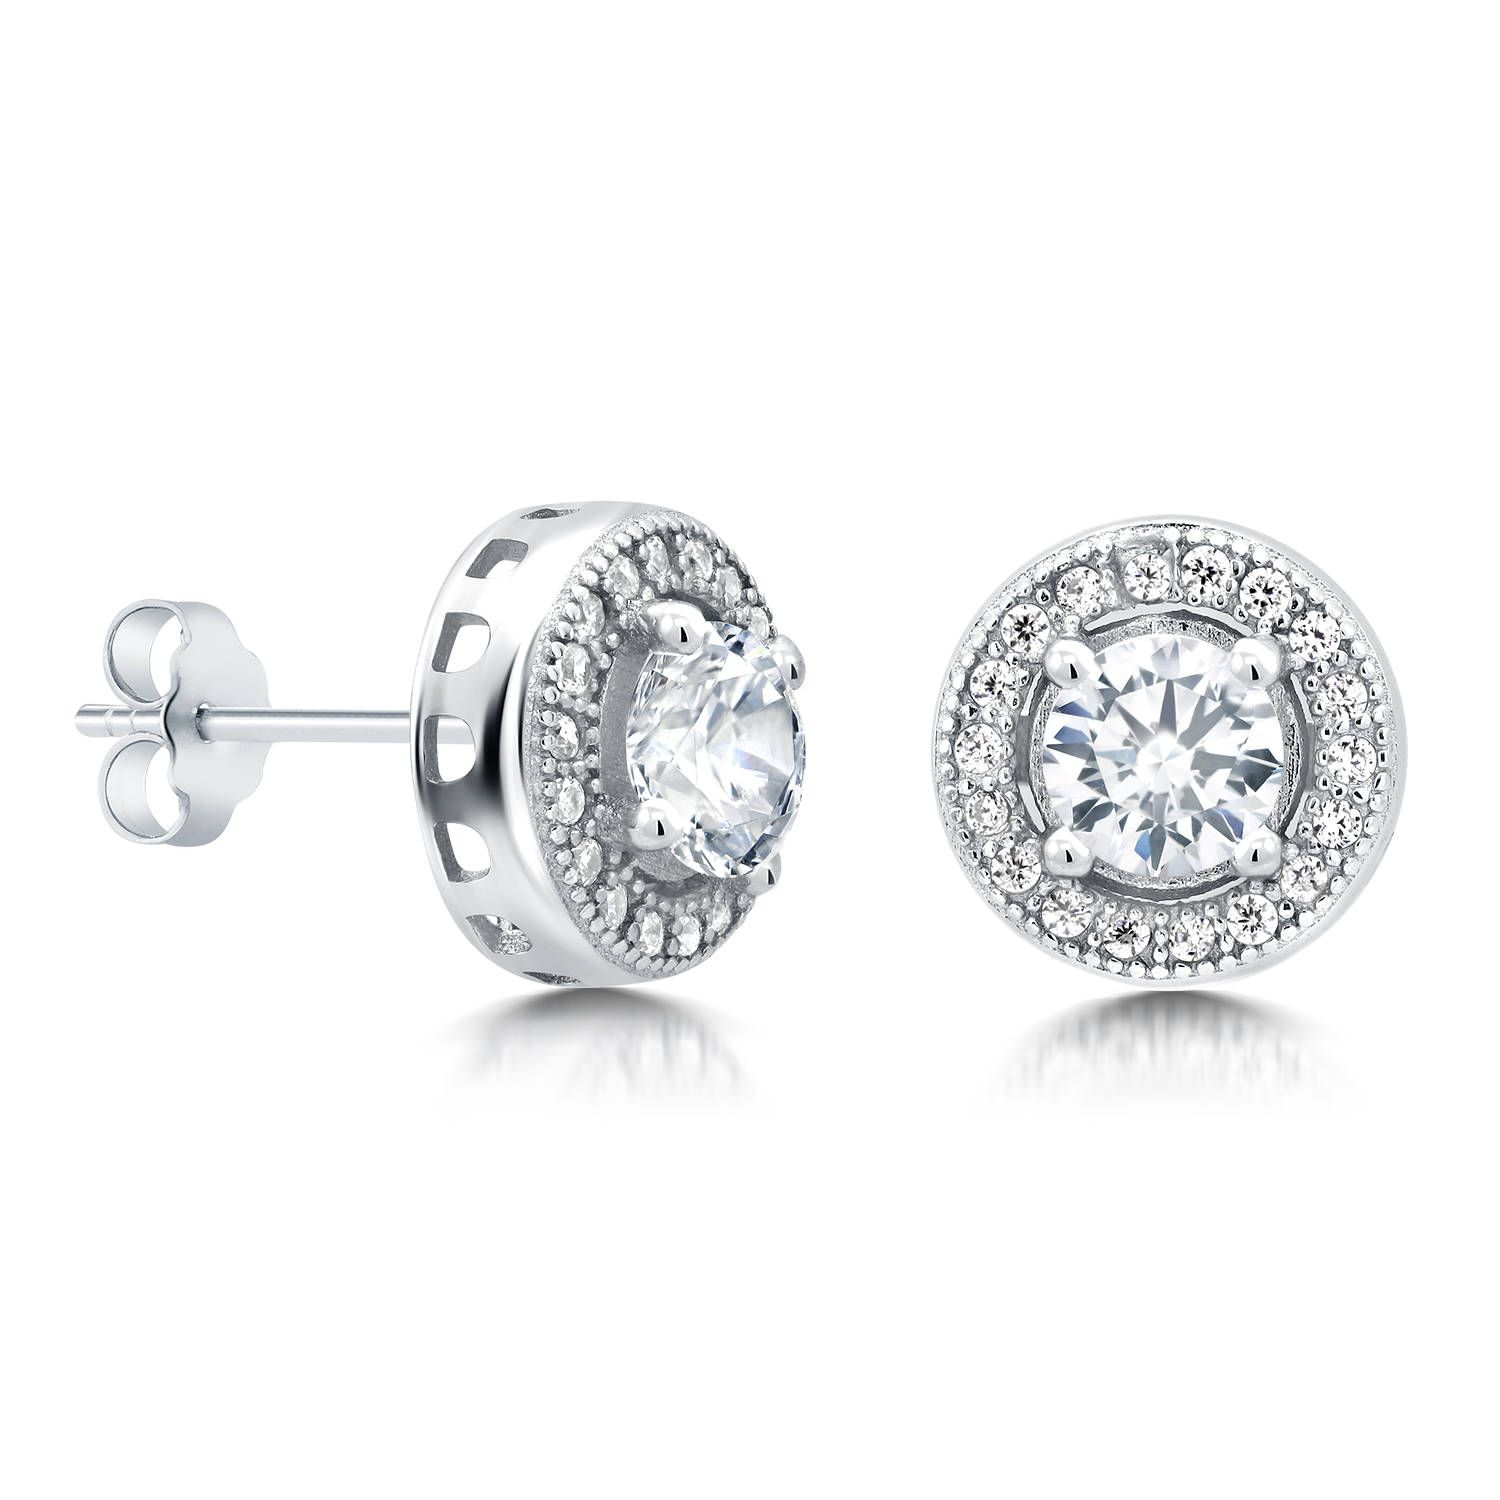 pin silver stud for sparkly studs sterling earrings solitaire halo jewelry girlfriend cz